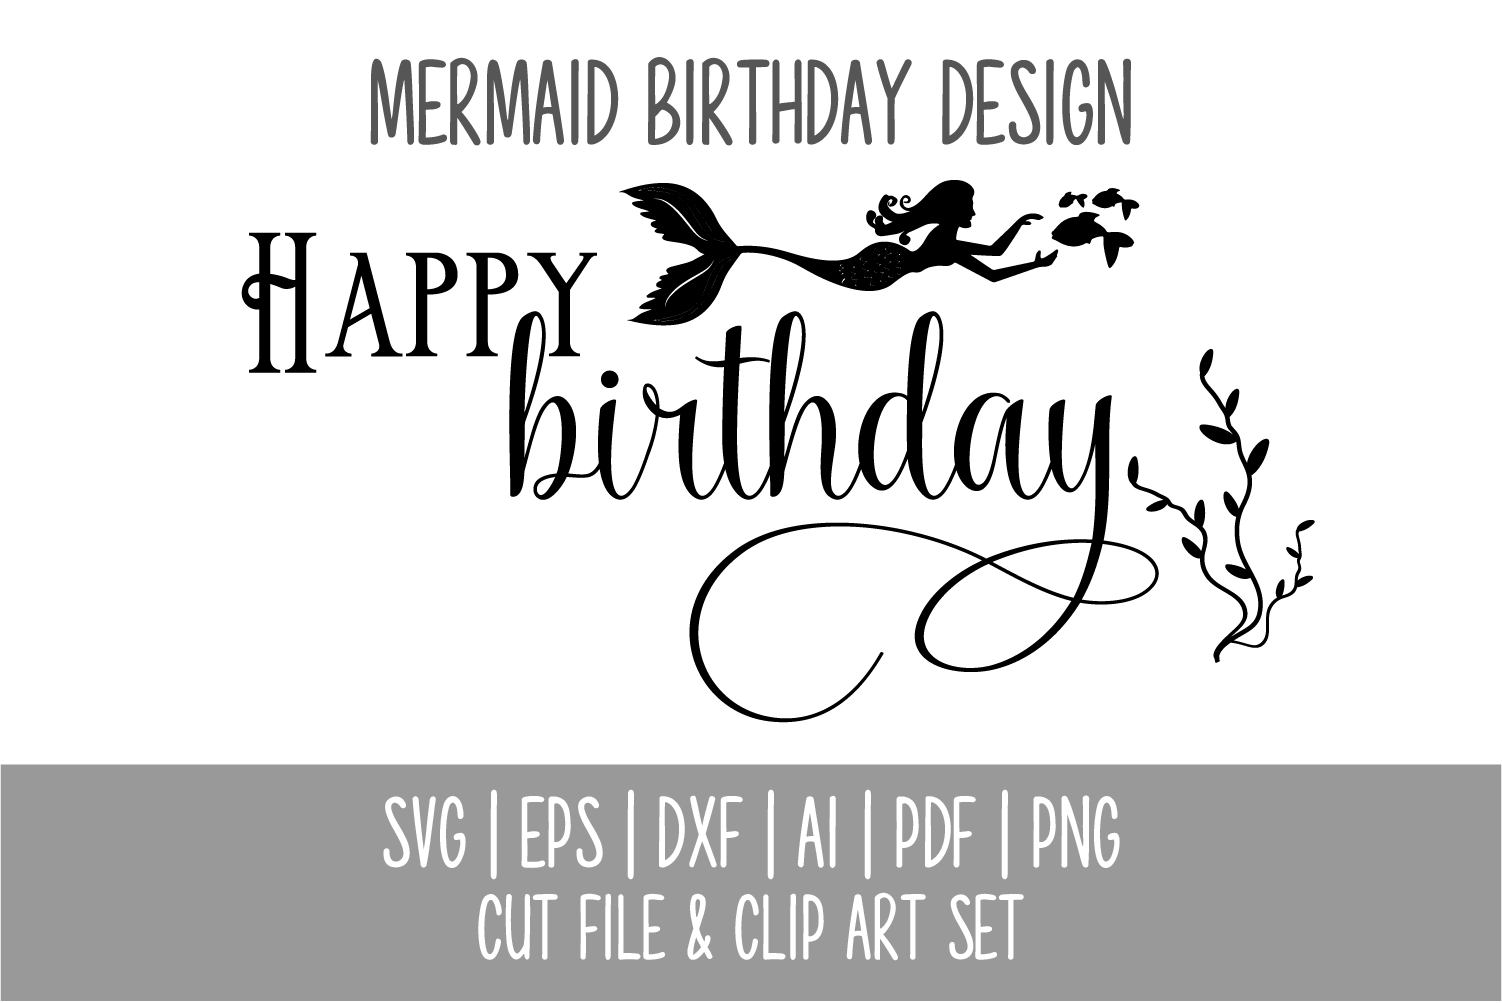 Mermaid Happy Birthday SVG Cut File and PNG Clip Art Set example image 4